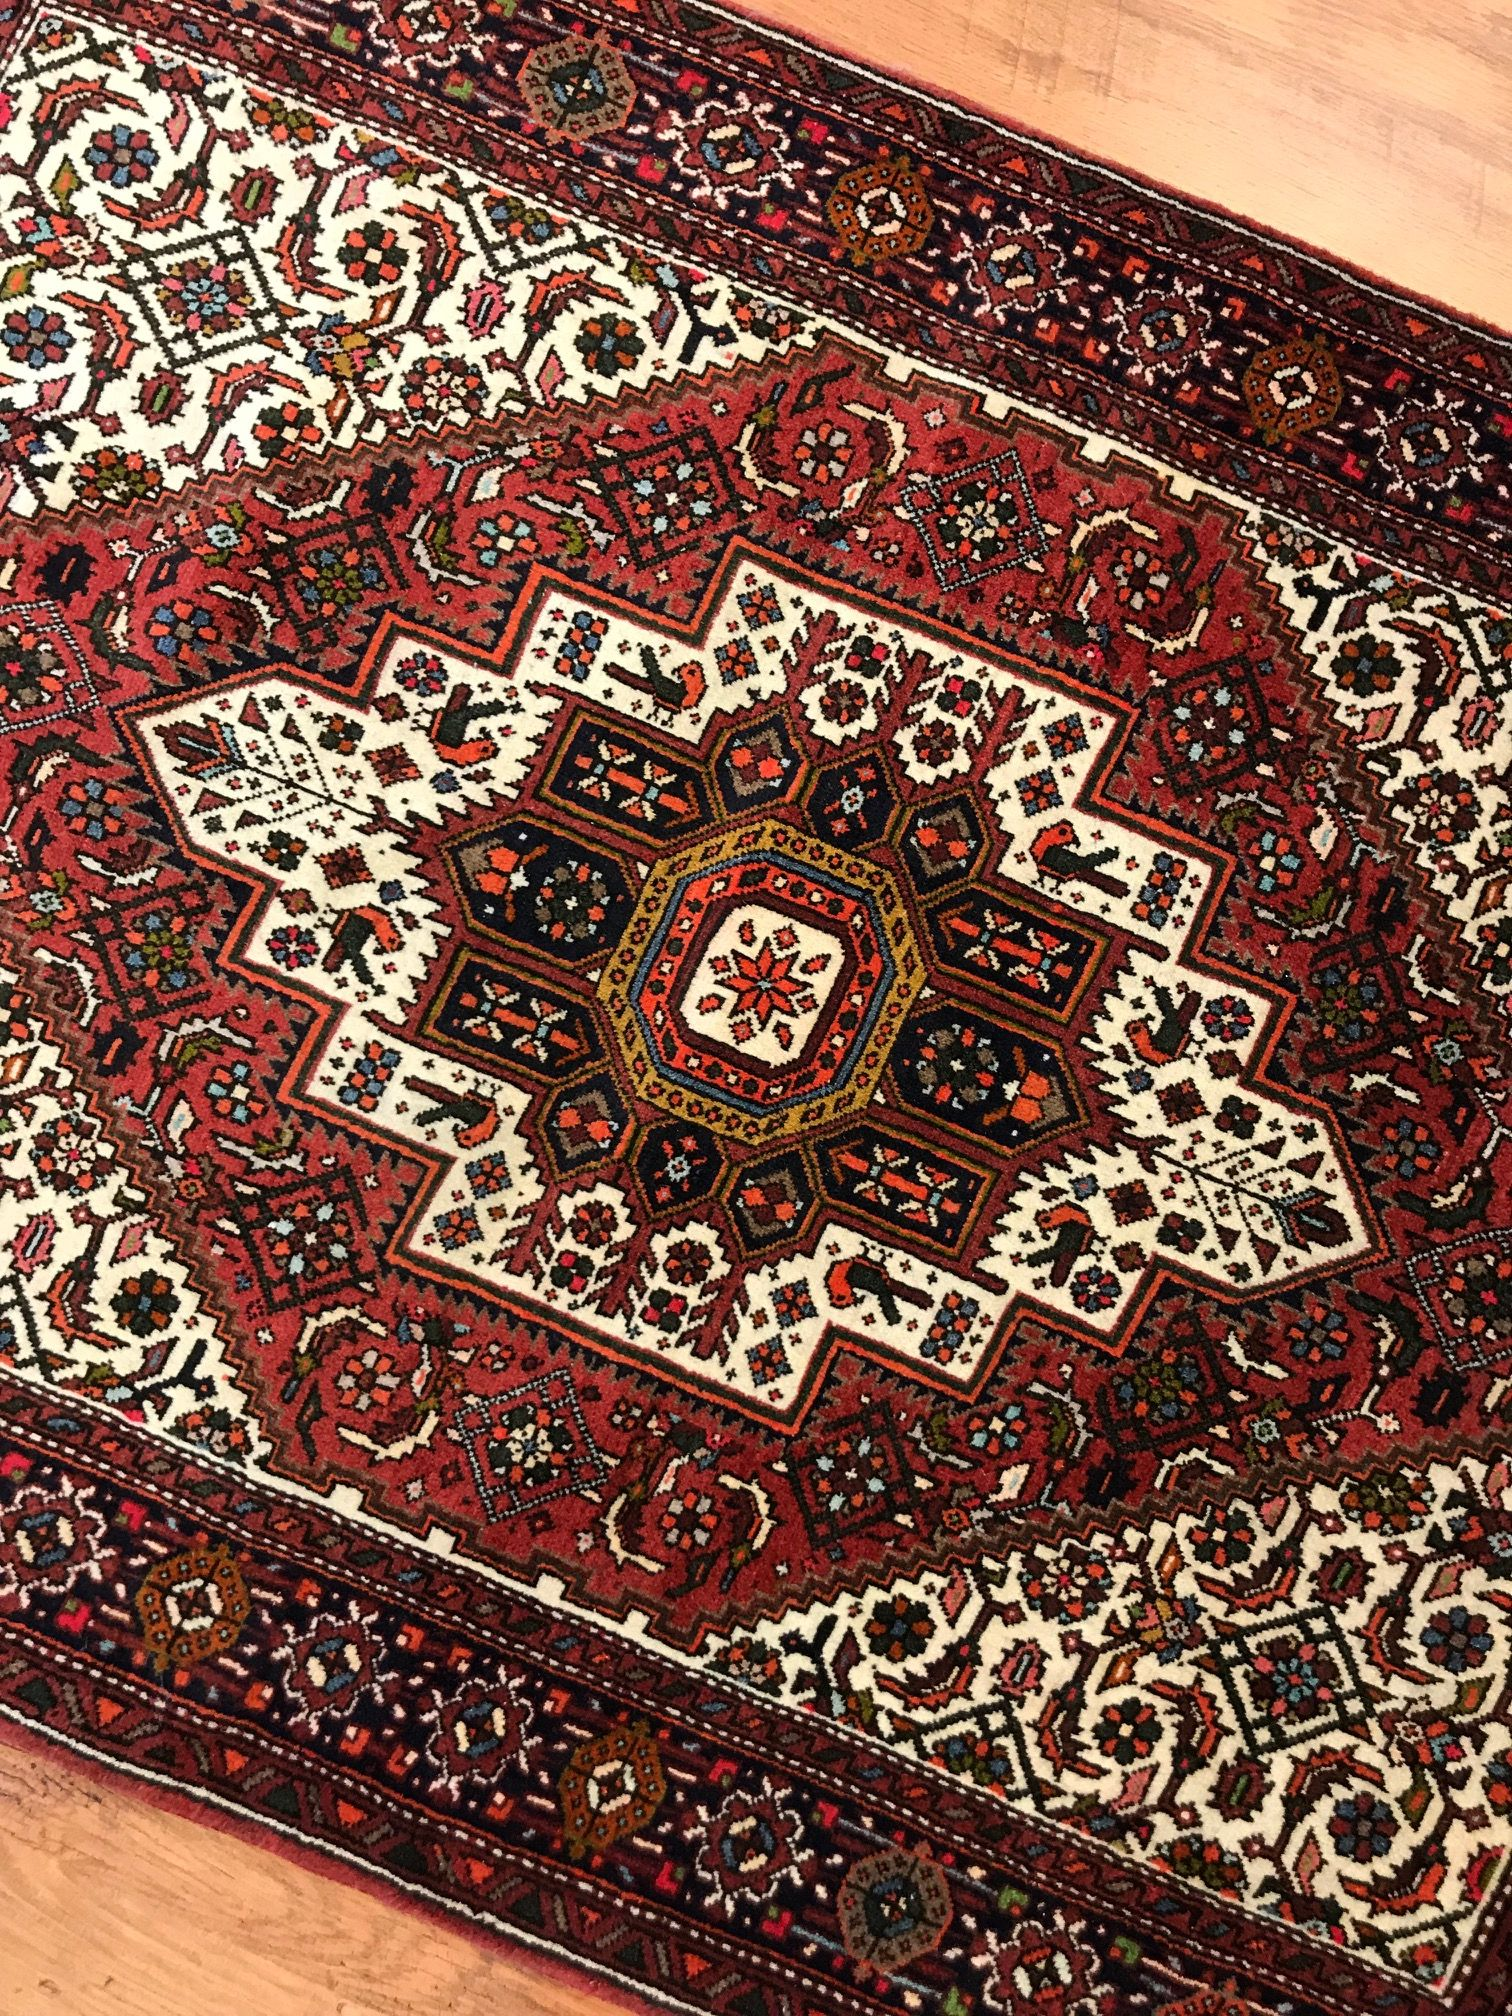 A handmade gholtogh persian rug from iran made of wool and cotton